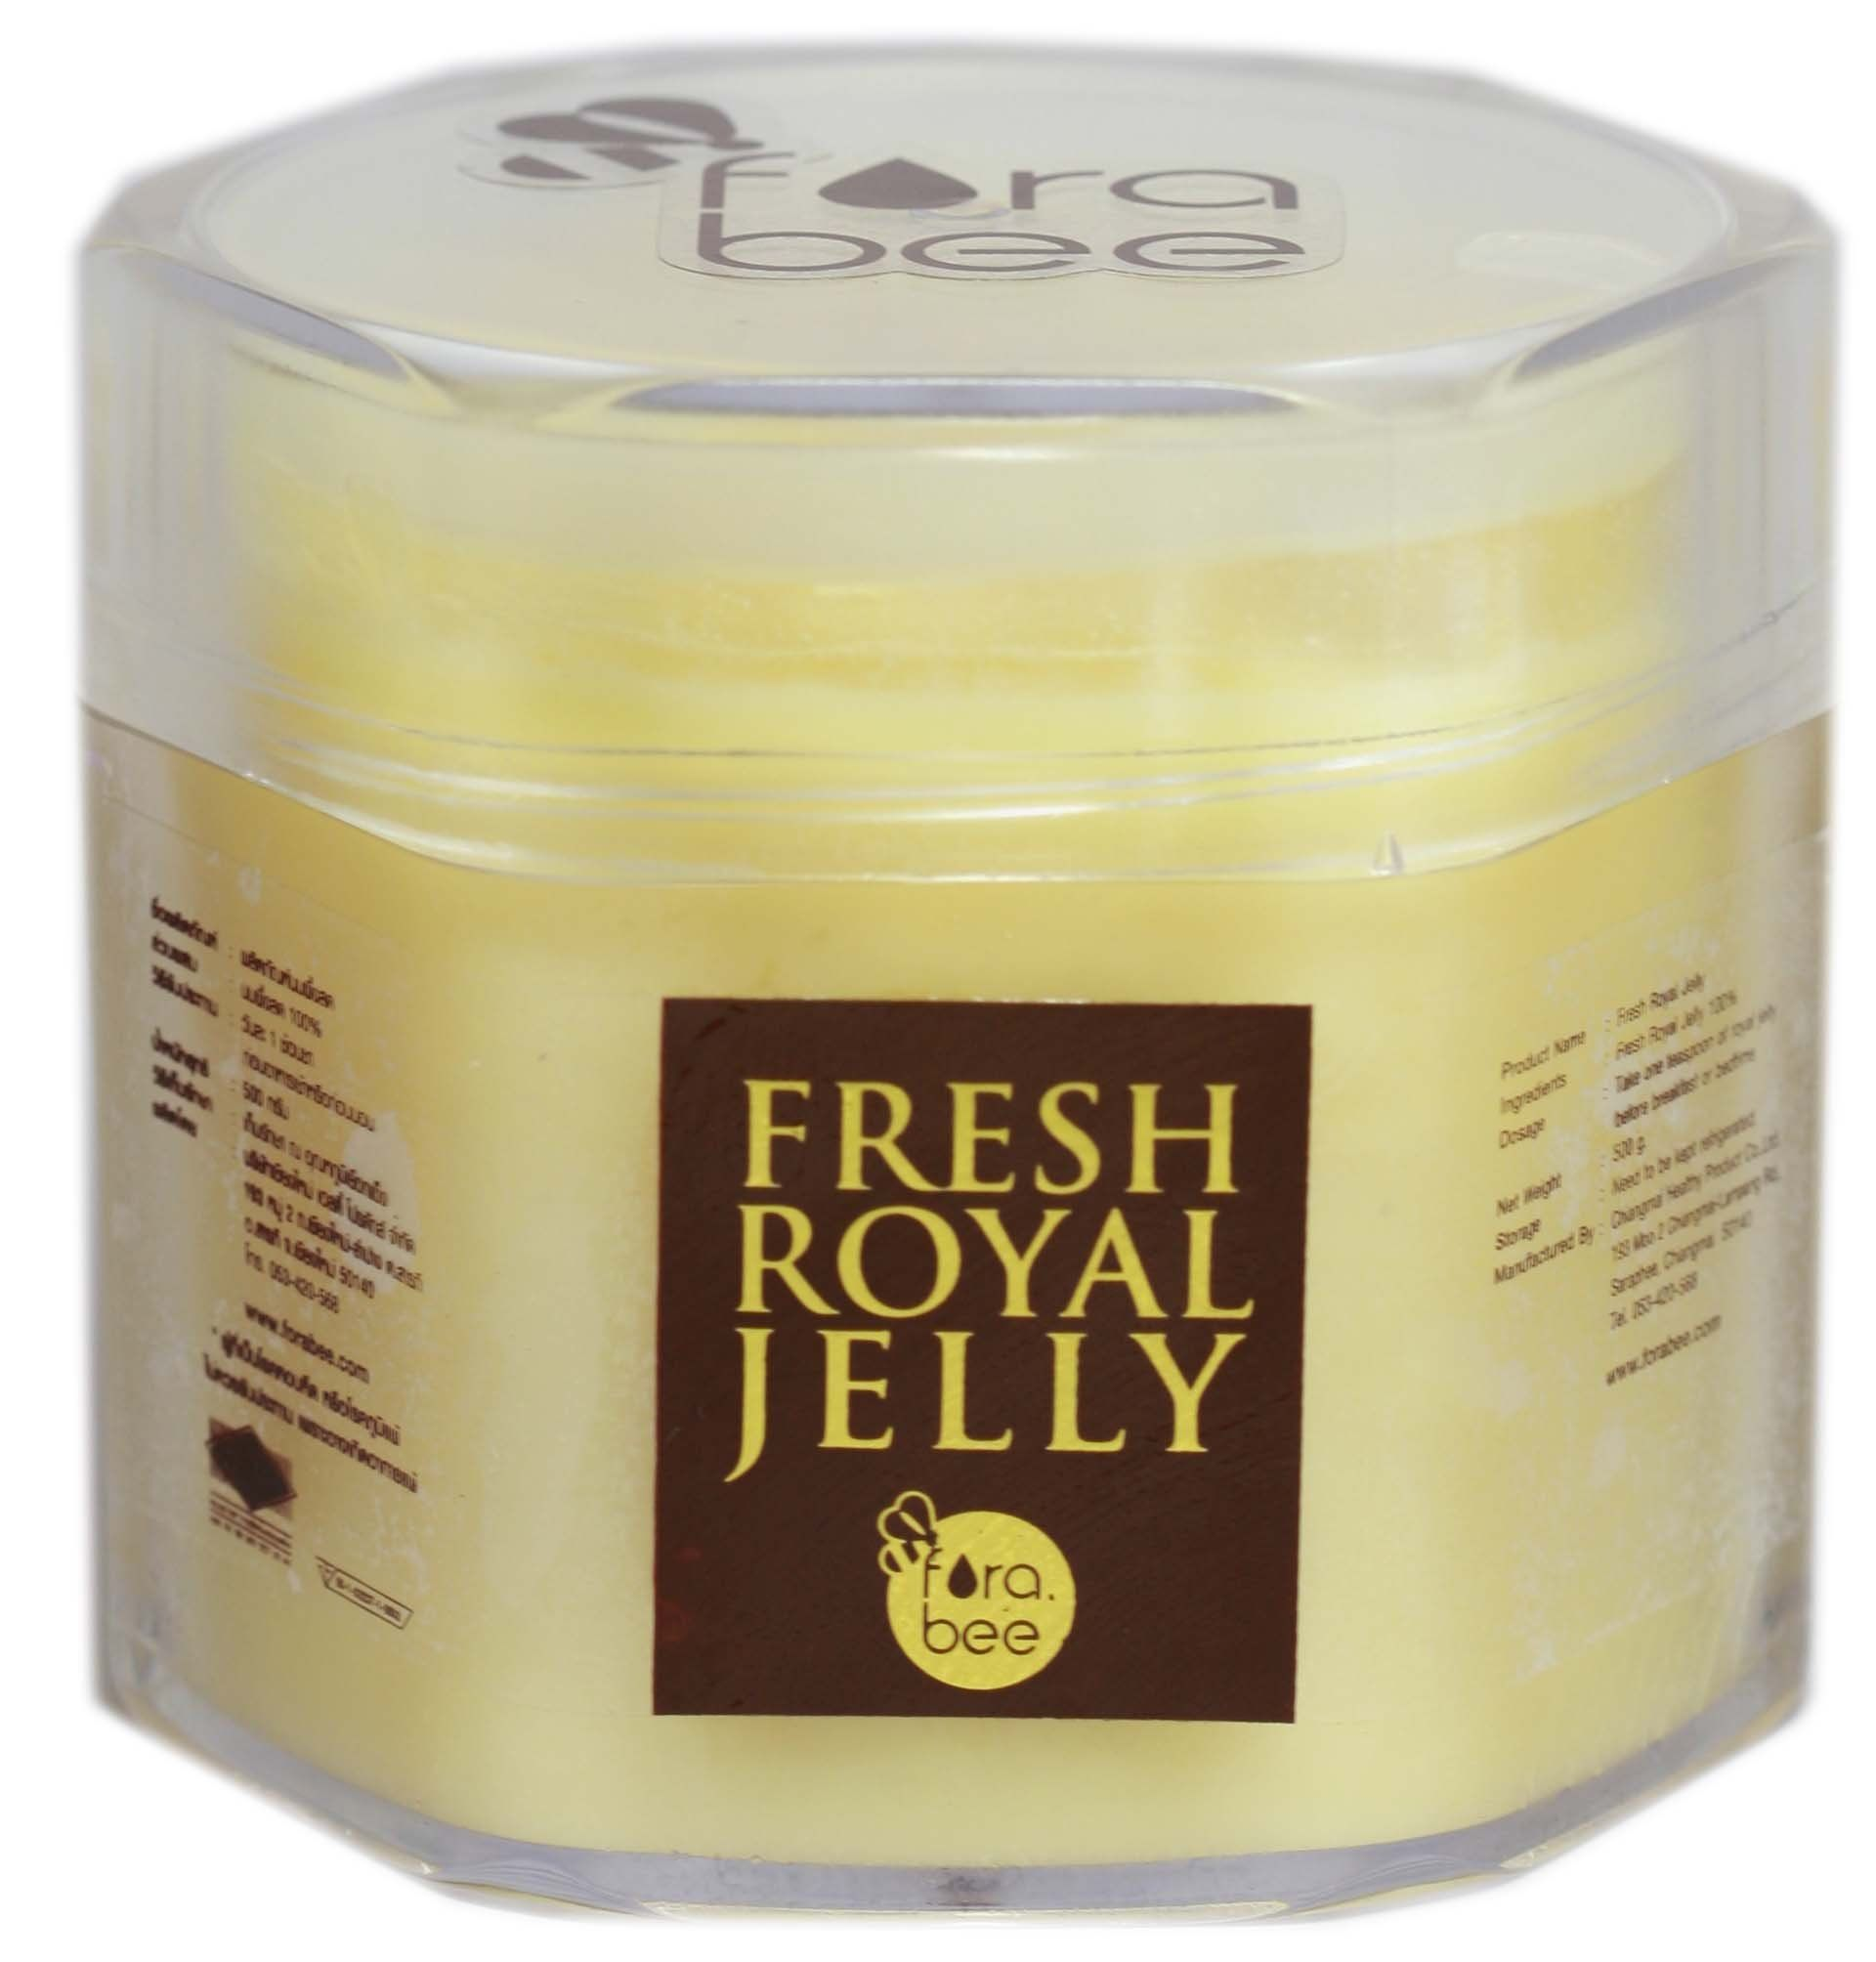 pure royal jelly for sale